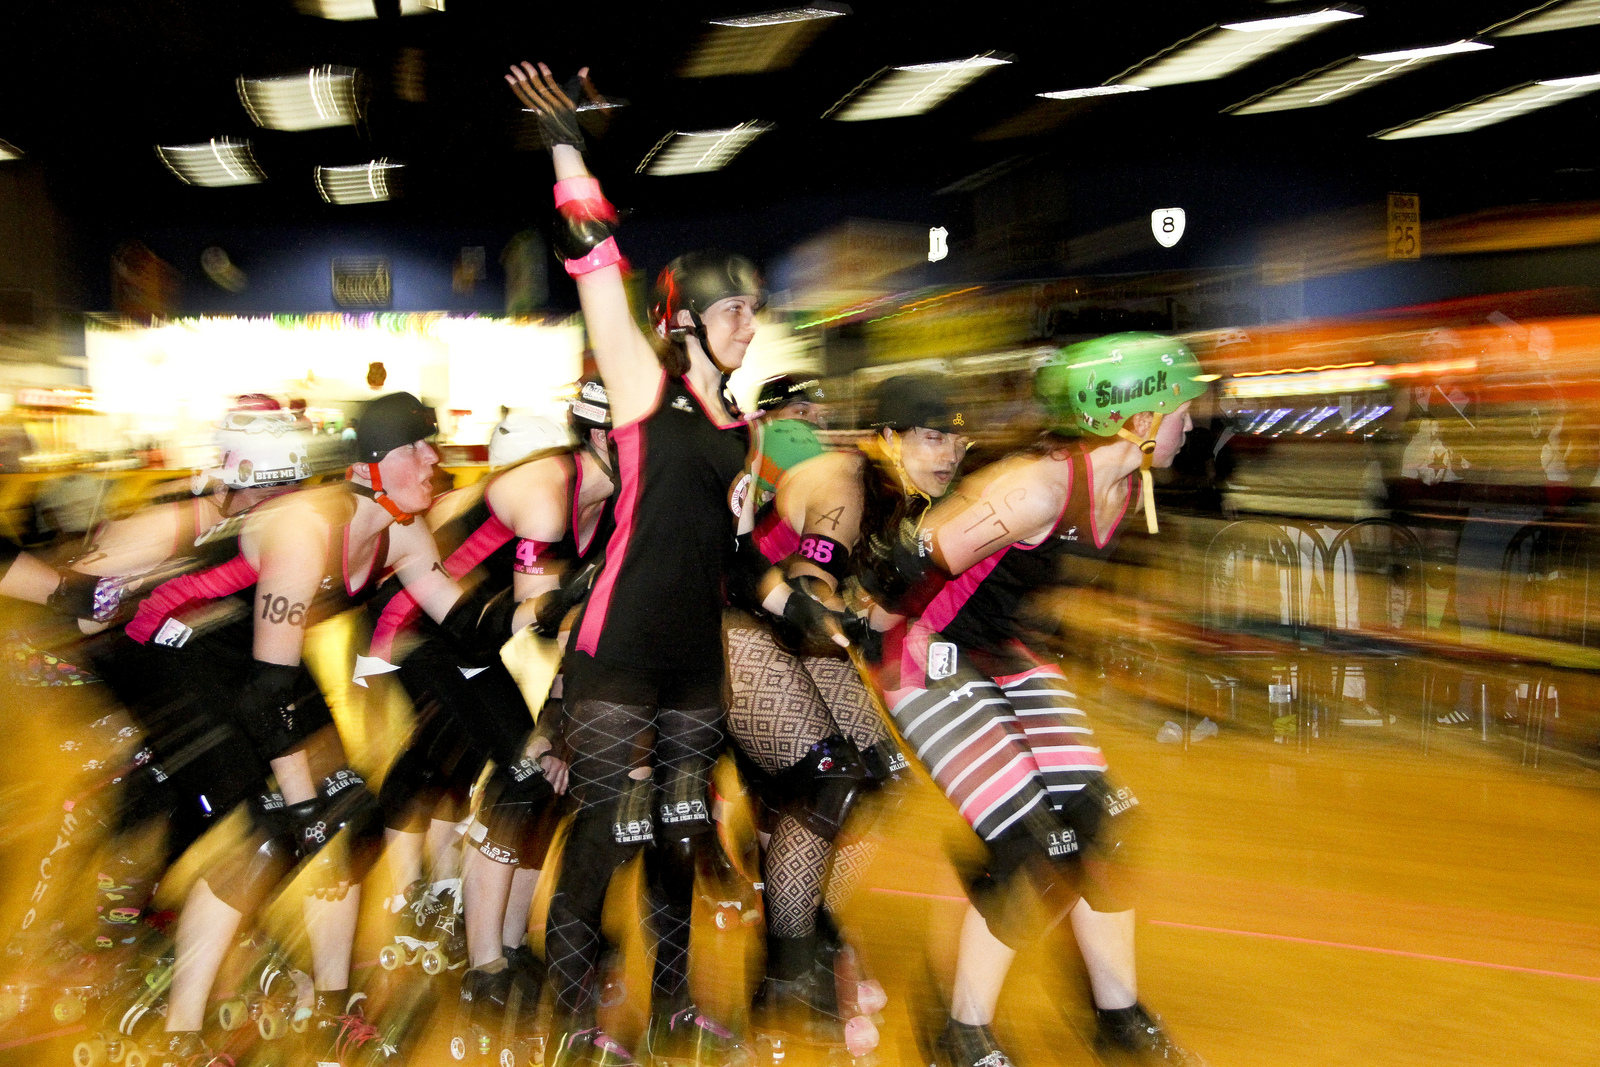 The Virginia Tech Roller Derby Club takes a victory lap. Photo by Suzanne Locascio.